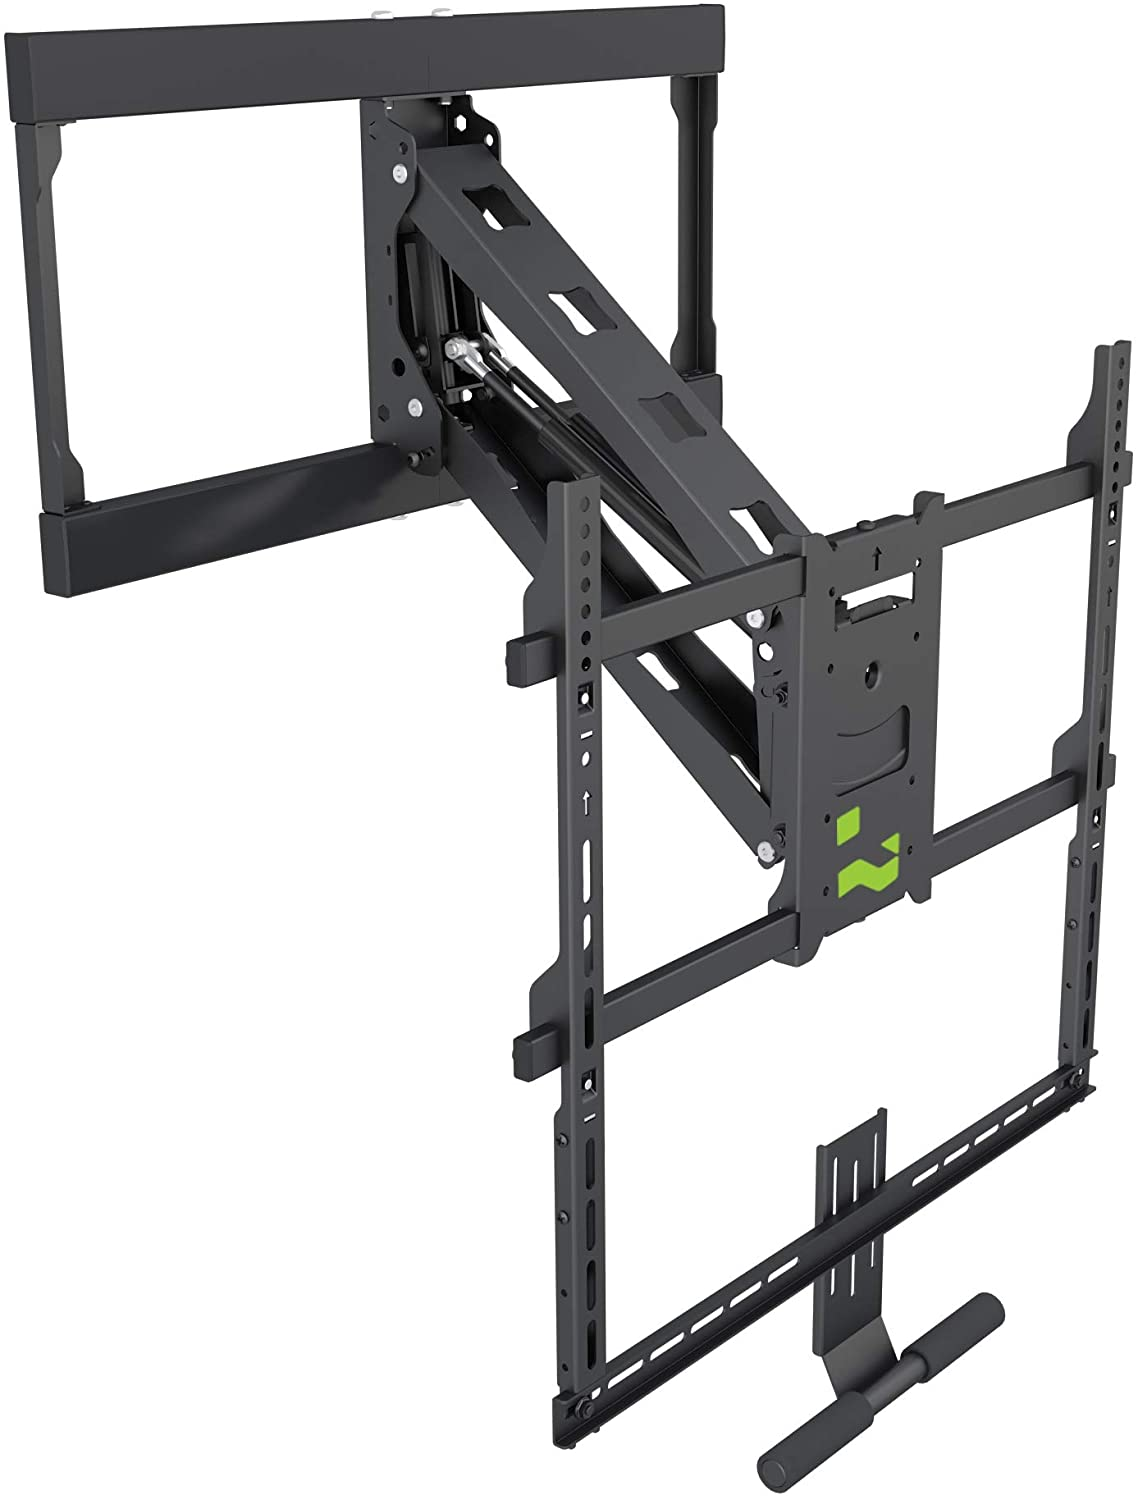 64-1156 Pull Down Fireplace TV Mount Bracket for 42 inches to 65 inches Flat Screen TVs